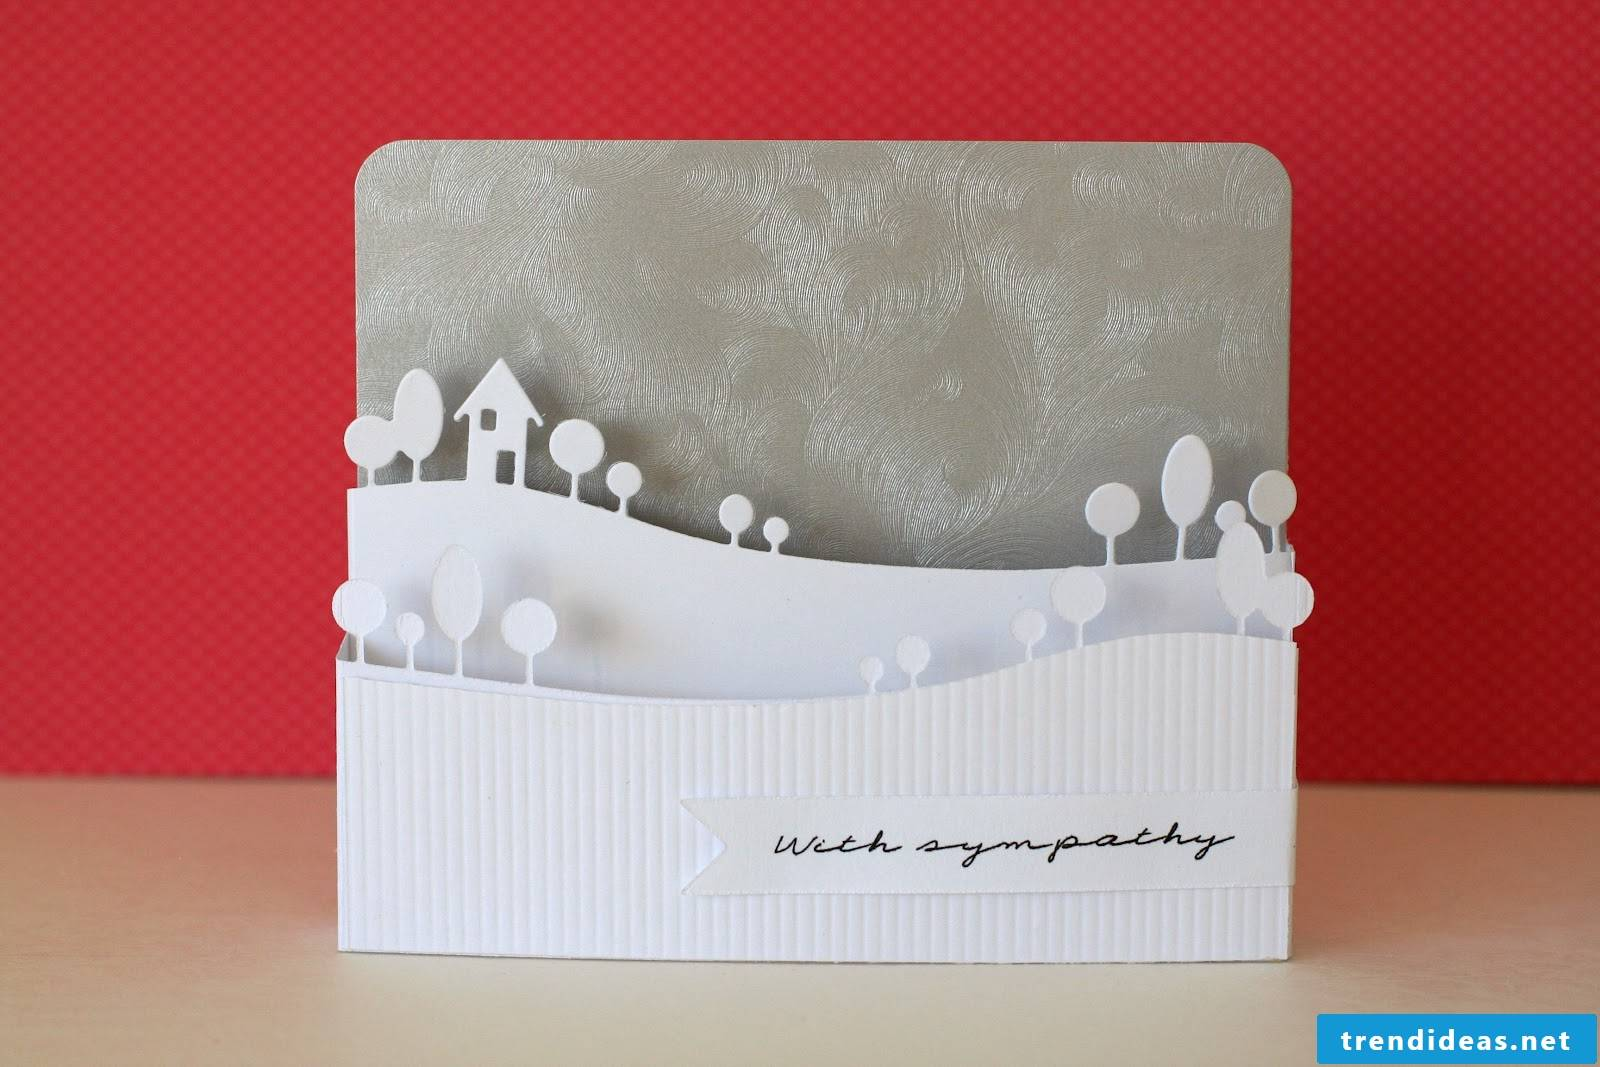 3D Christmas card - how do you manage this result?